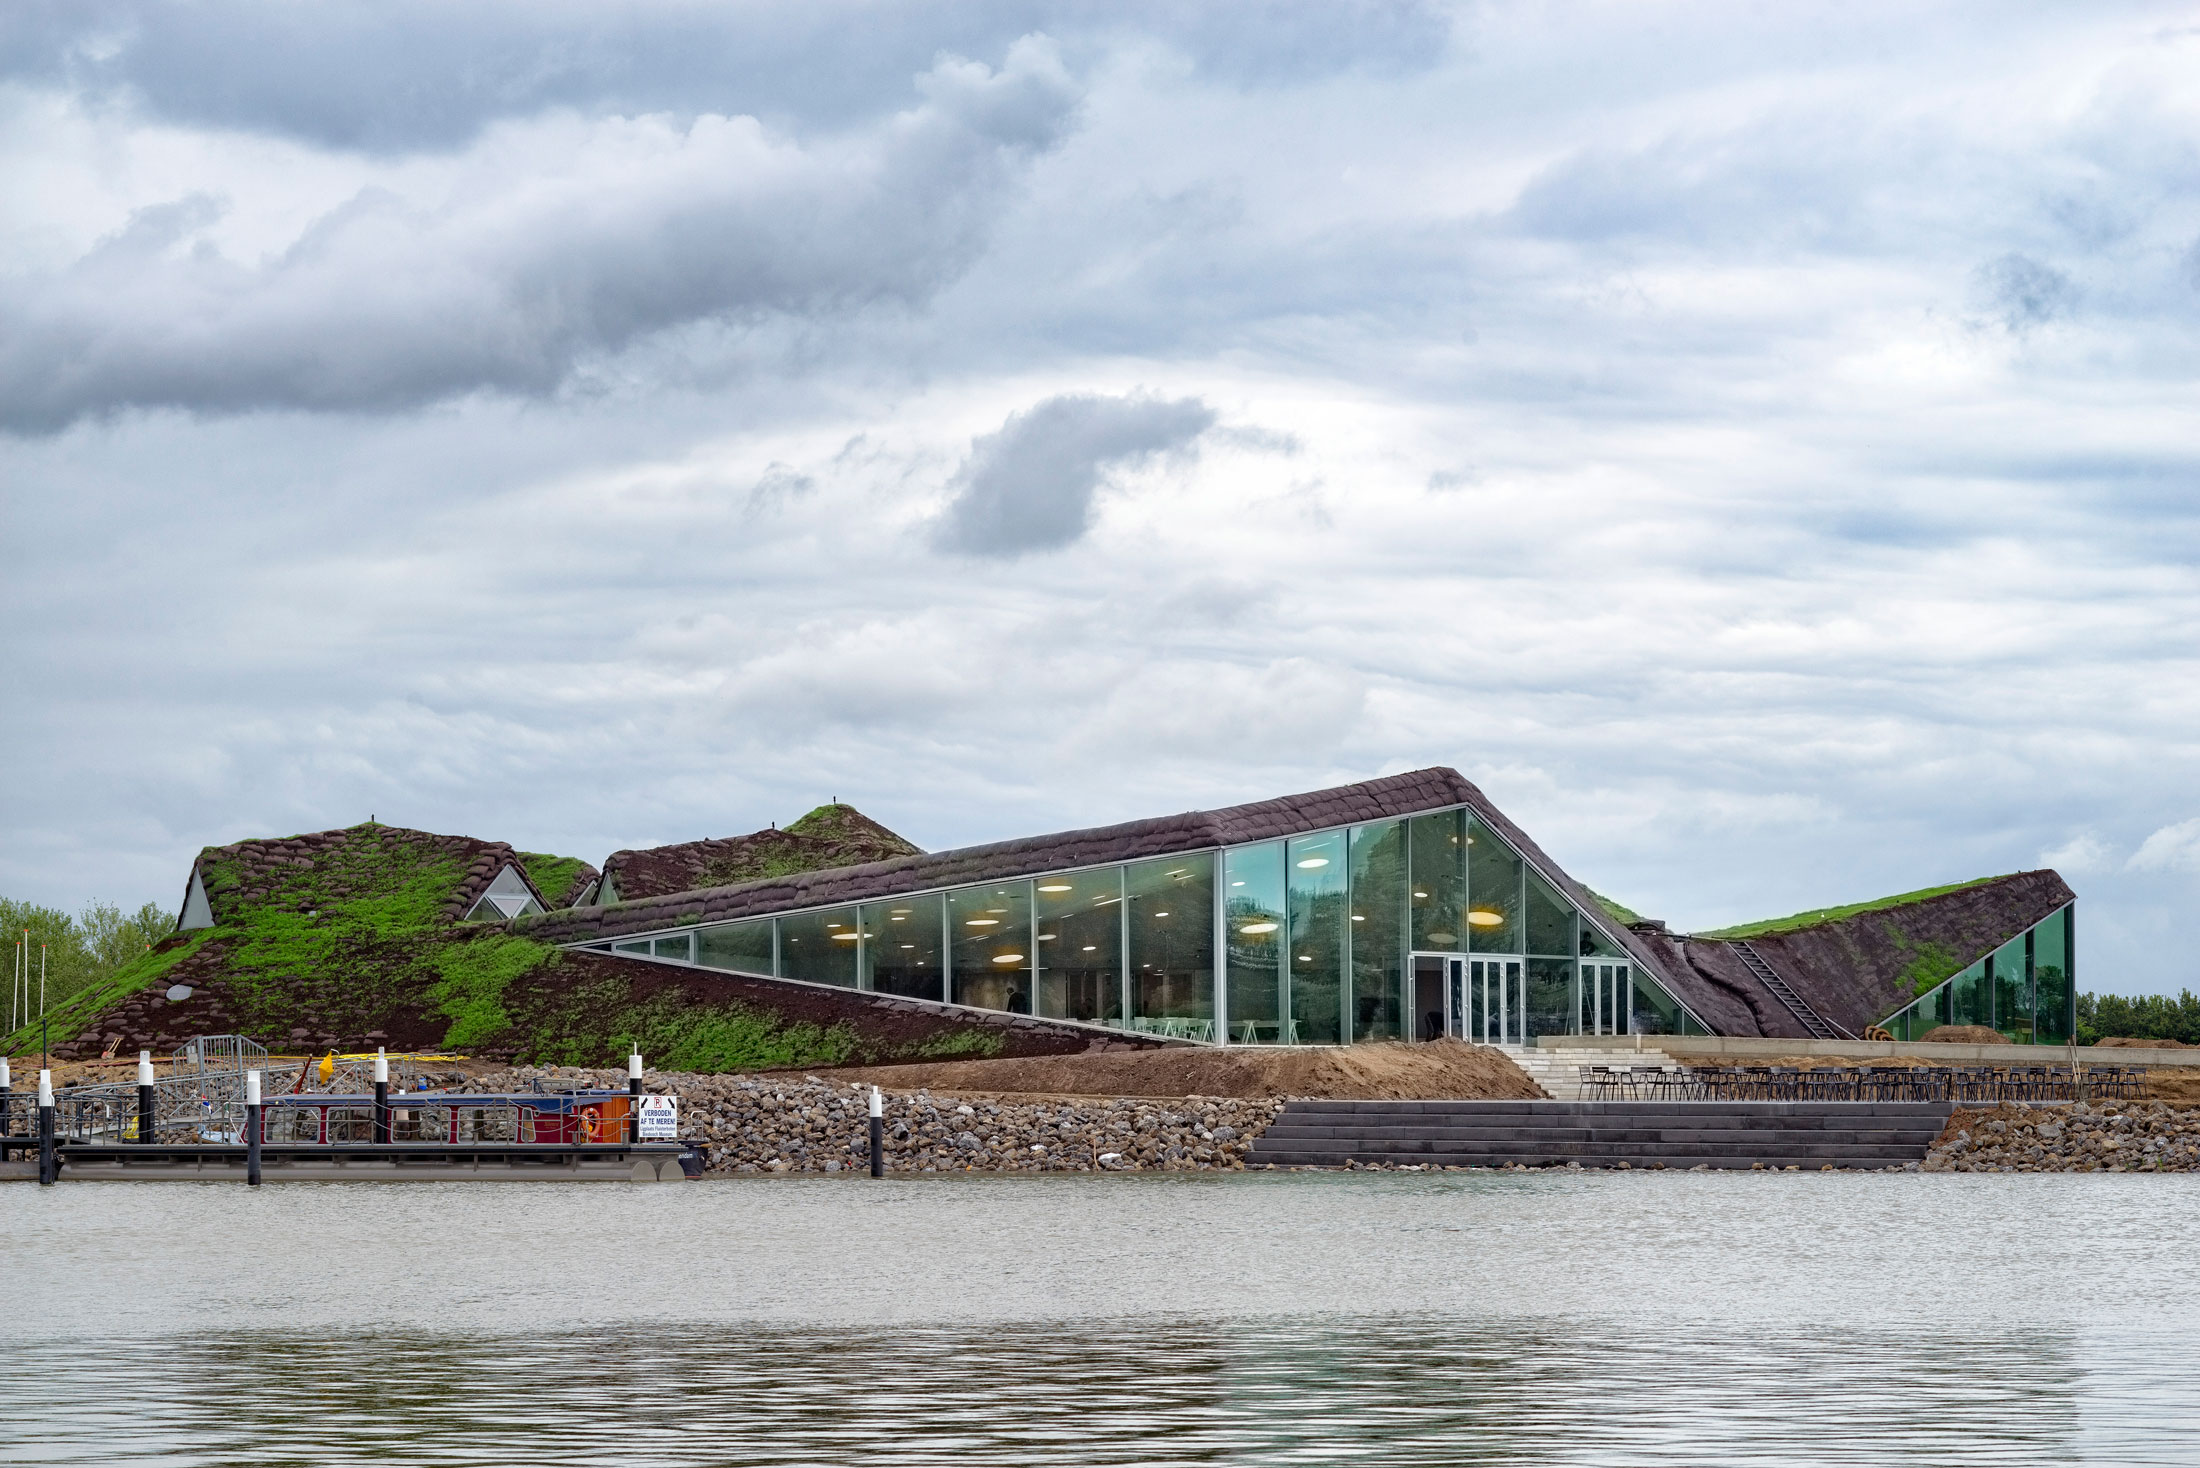 The Biesbosch Museum